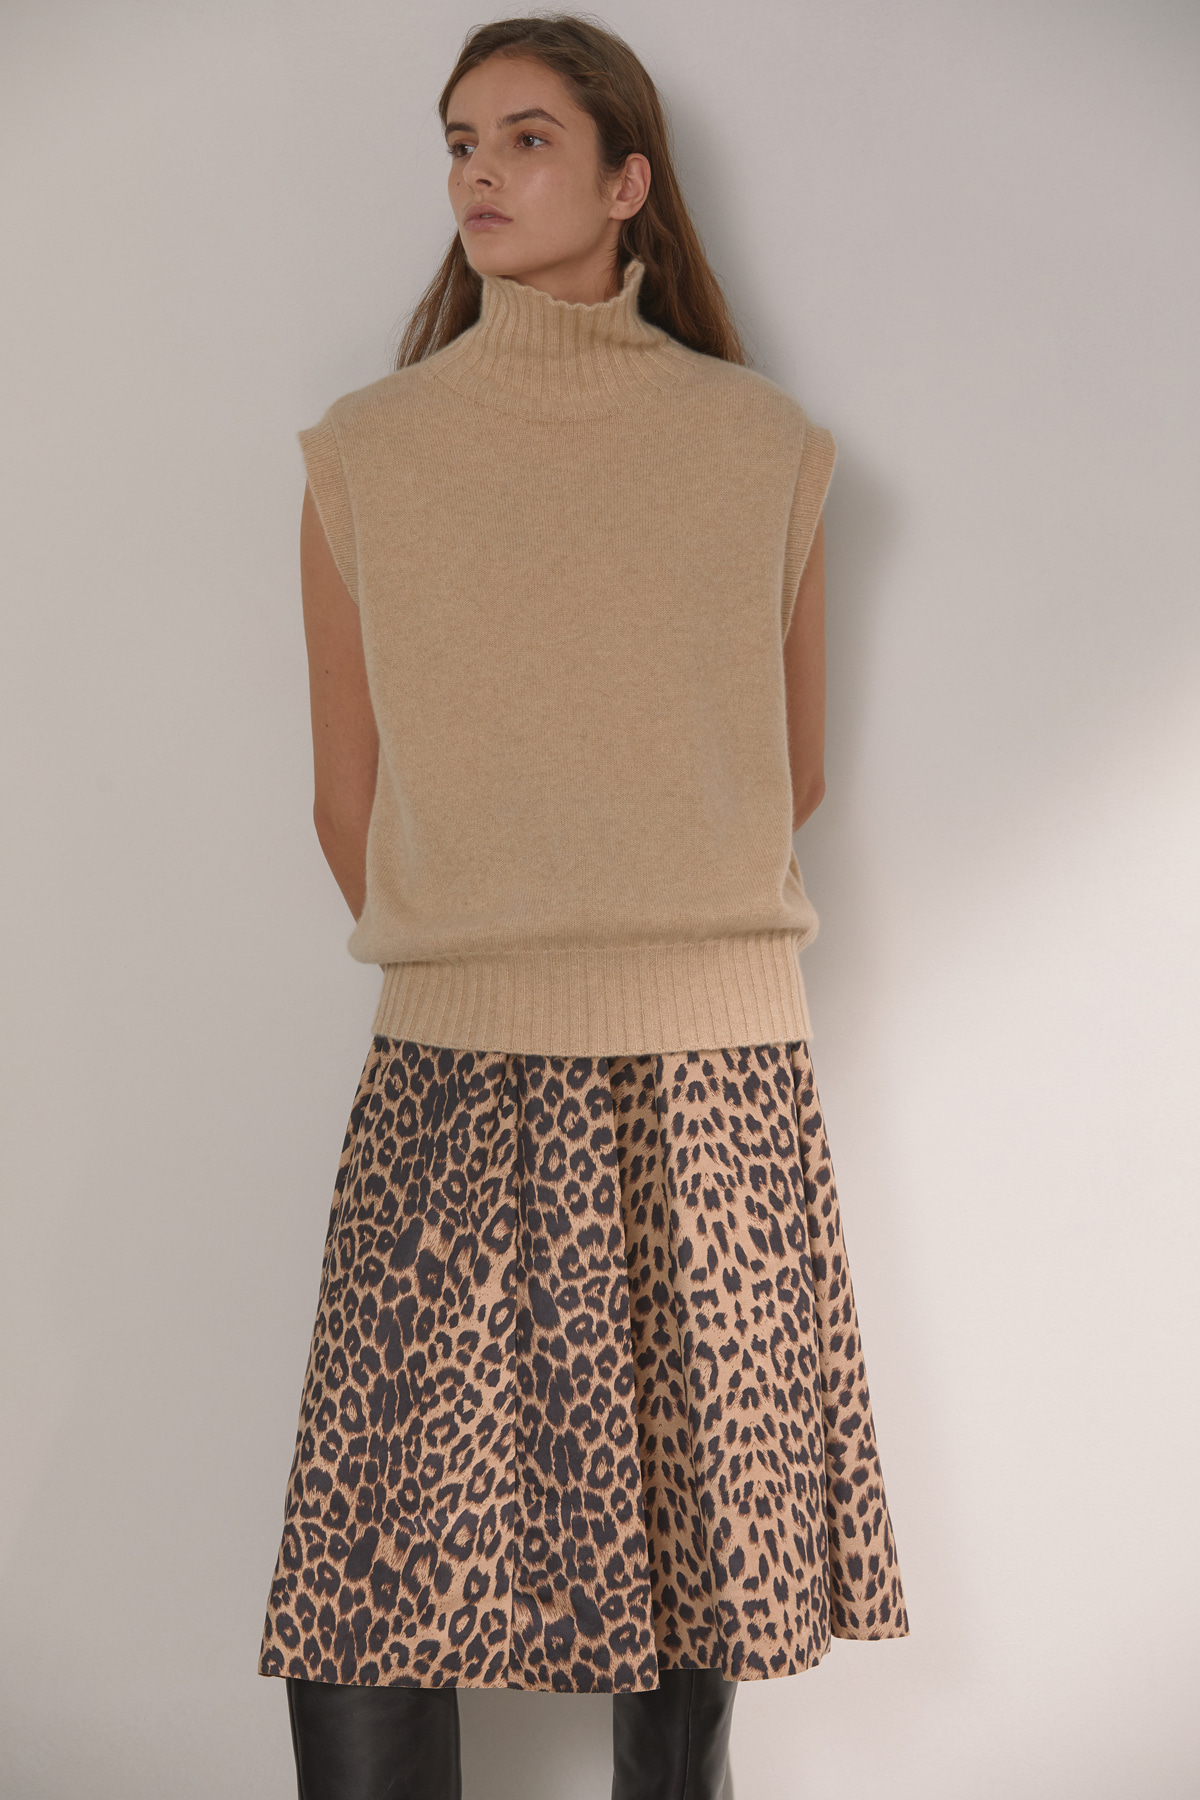 DEMERE LEOPARD PRINTED SKIRT